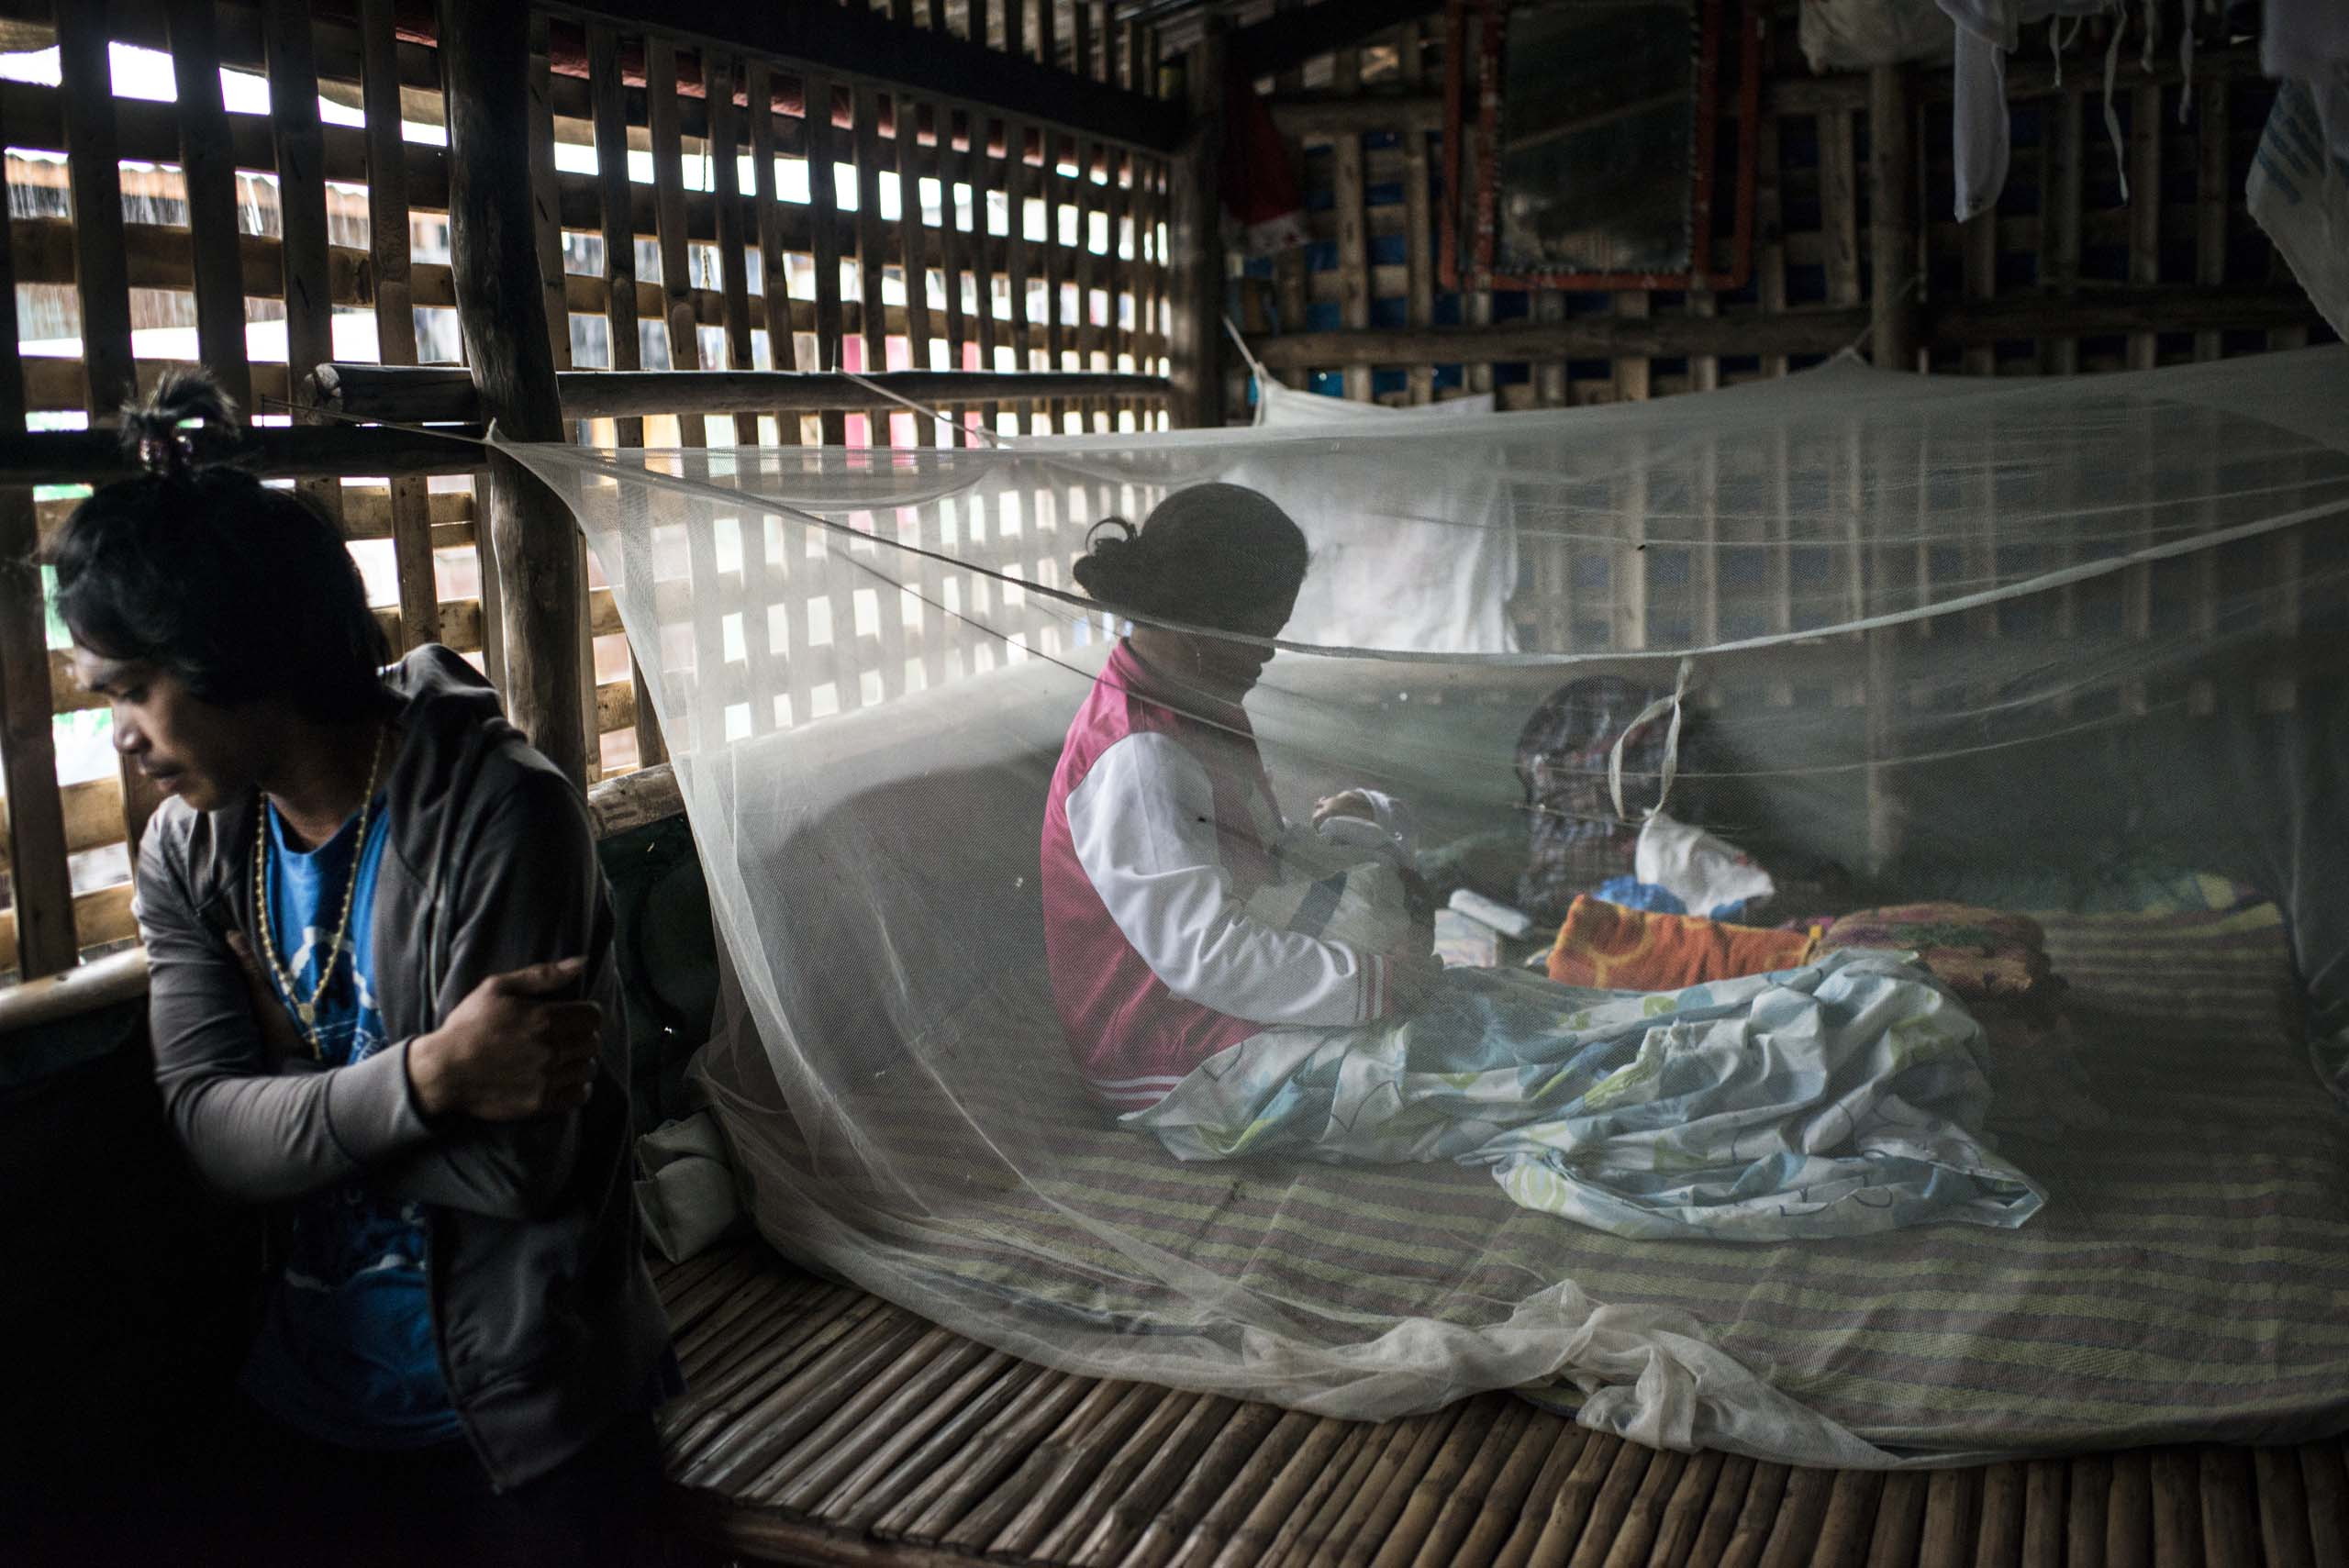 Jan.12, 2014: Analyn Pesado and Ryan Bacate at home with their new born baby Ryan Jr., in Telegrafo, a small town outside of Tacloban, in the Philippines.